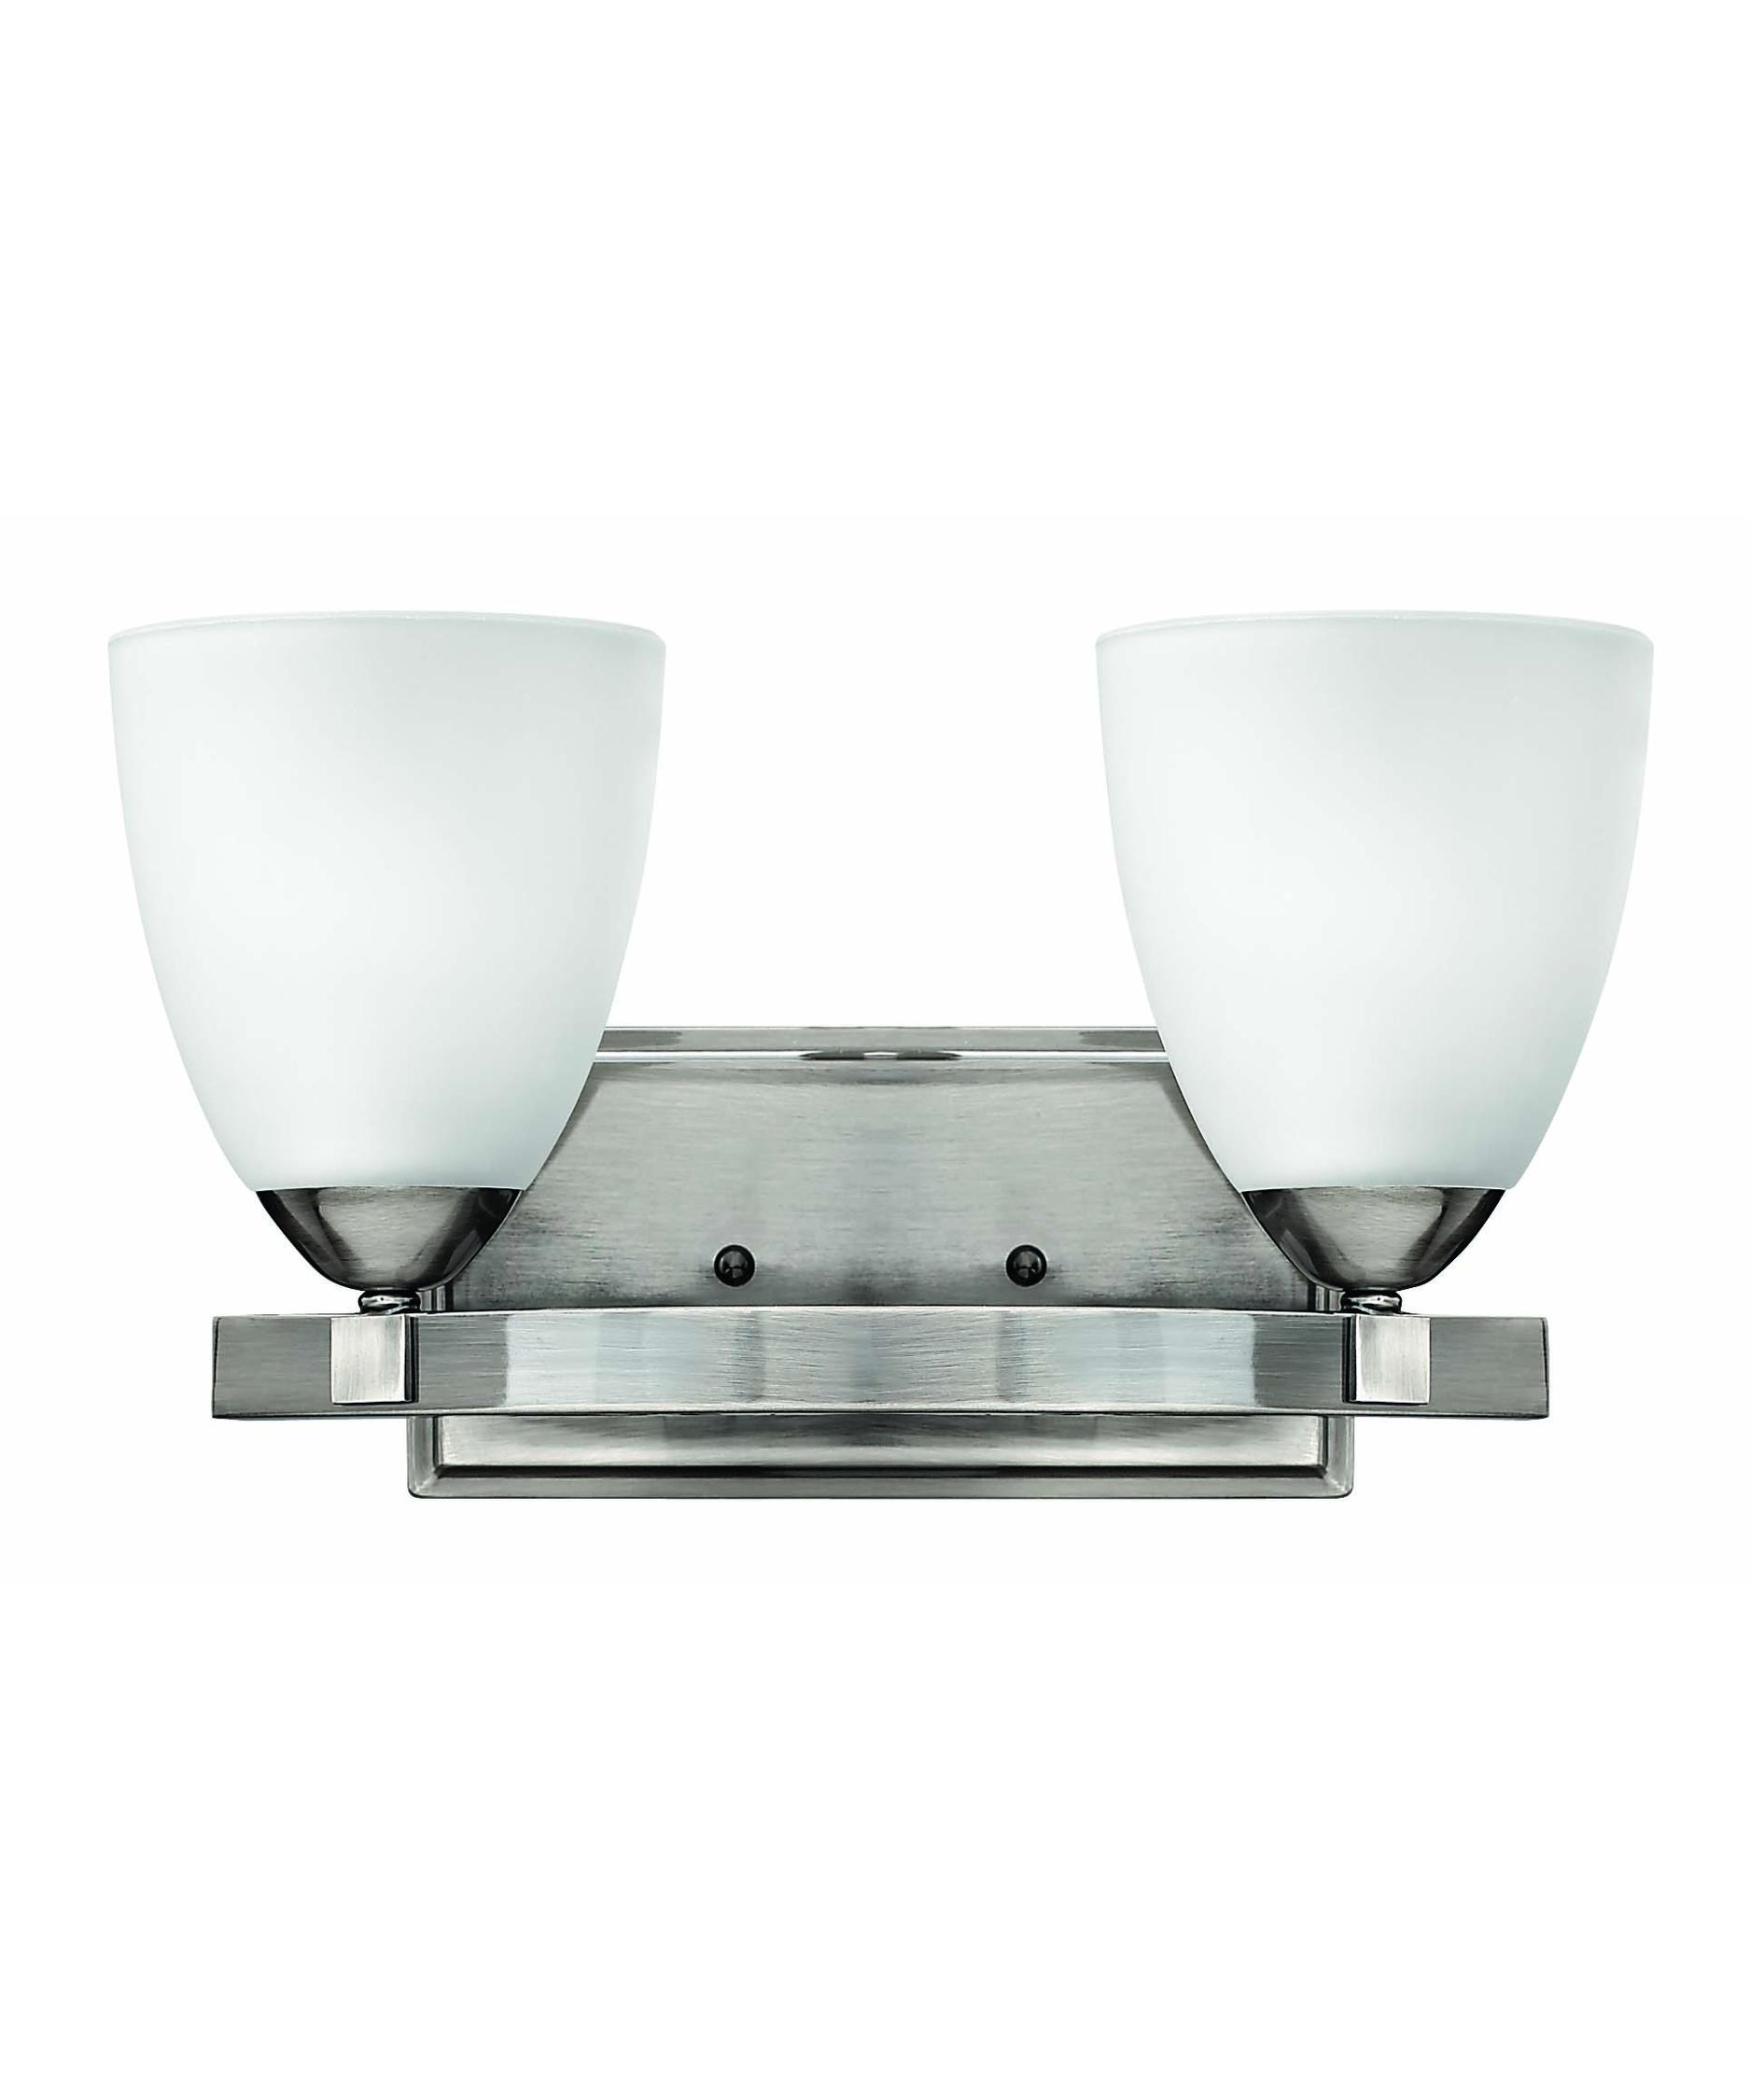 Hinkley lighting 5252 pinnacle 14 inch bath vanity light for Hinkley bathroom vanity lighting